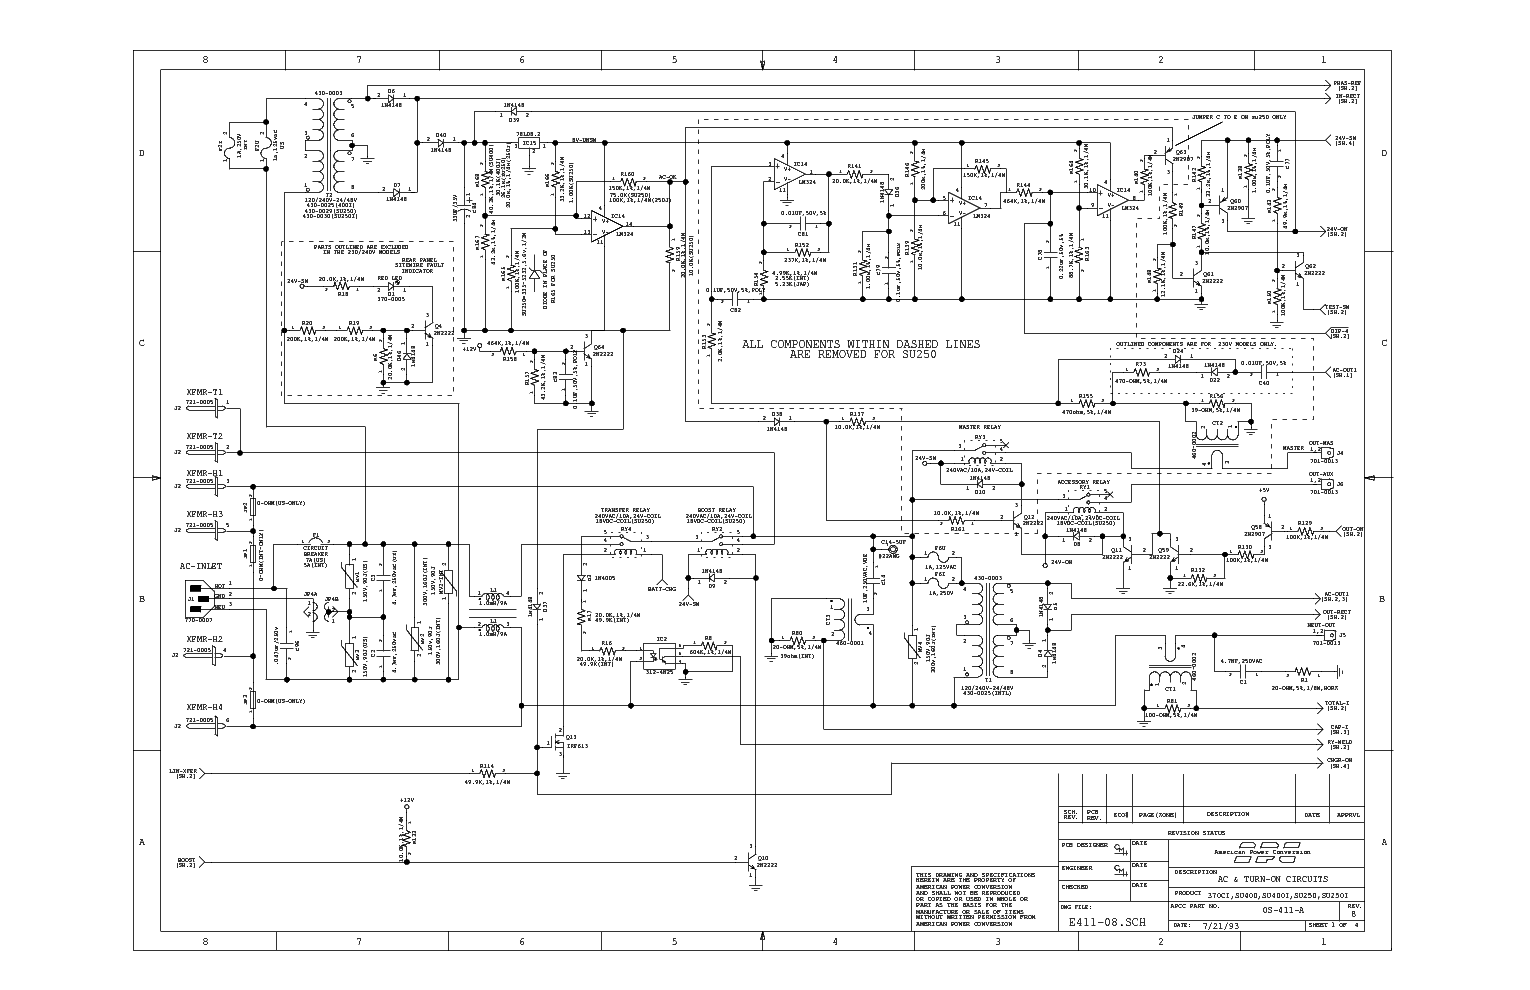 apc mini chopper wiring diagram for pinterest apc ups smart ups schematic - google search | circuits ...